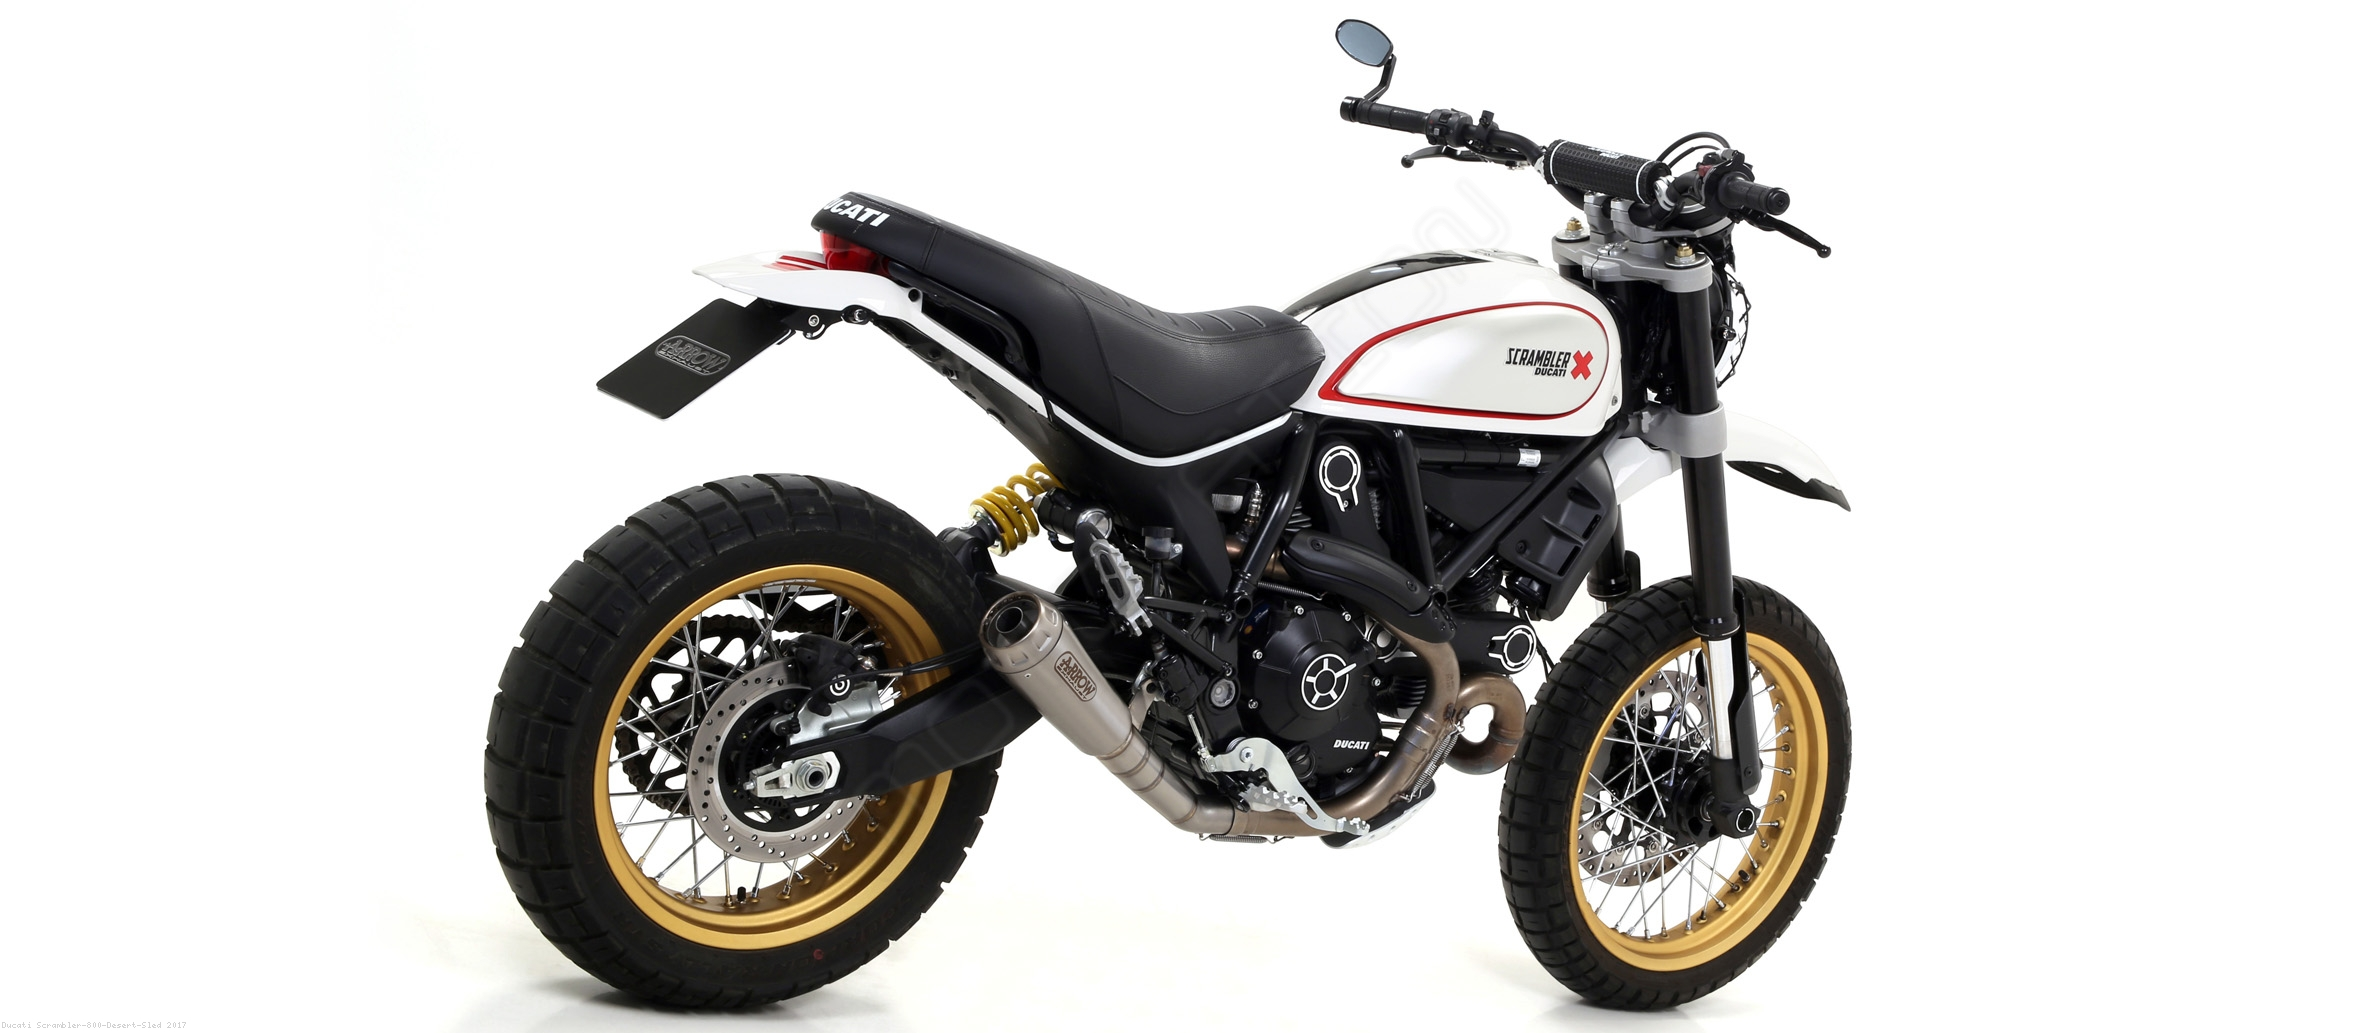 Arrow Ducati Scrambler Exhaust